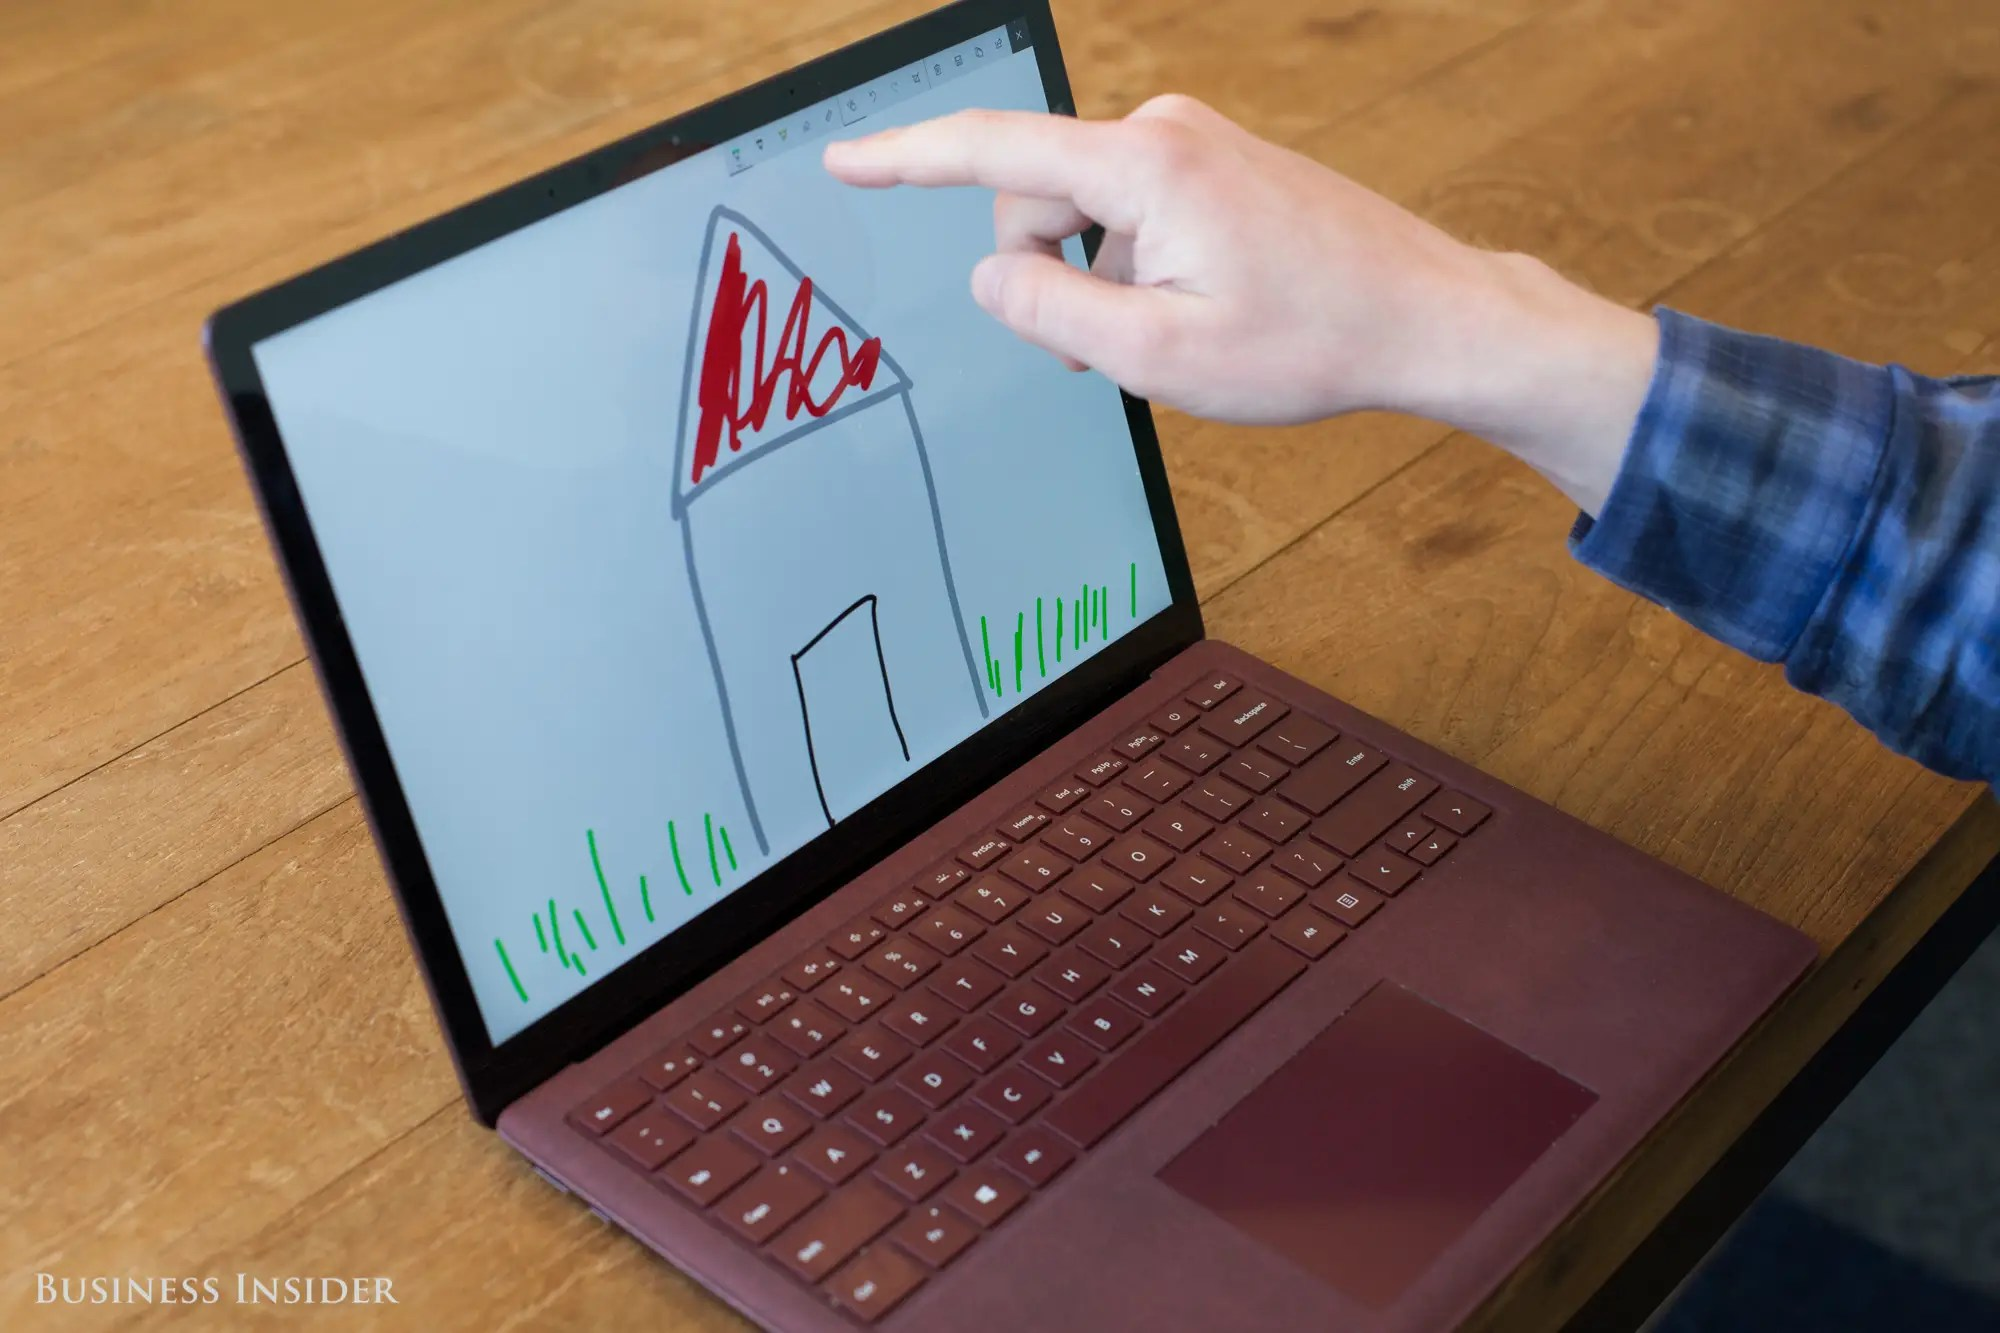 Other than a touchscreen, there's no gimmick here. For $999, you get a premium, high-end laptop that rivals anything Apple has to offer.